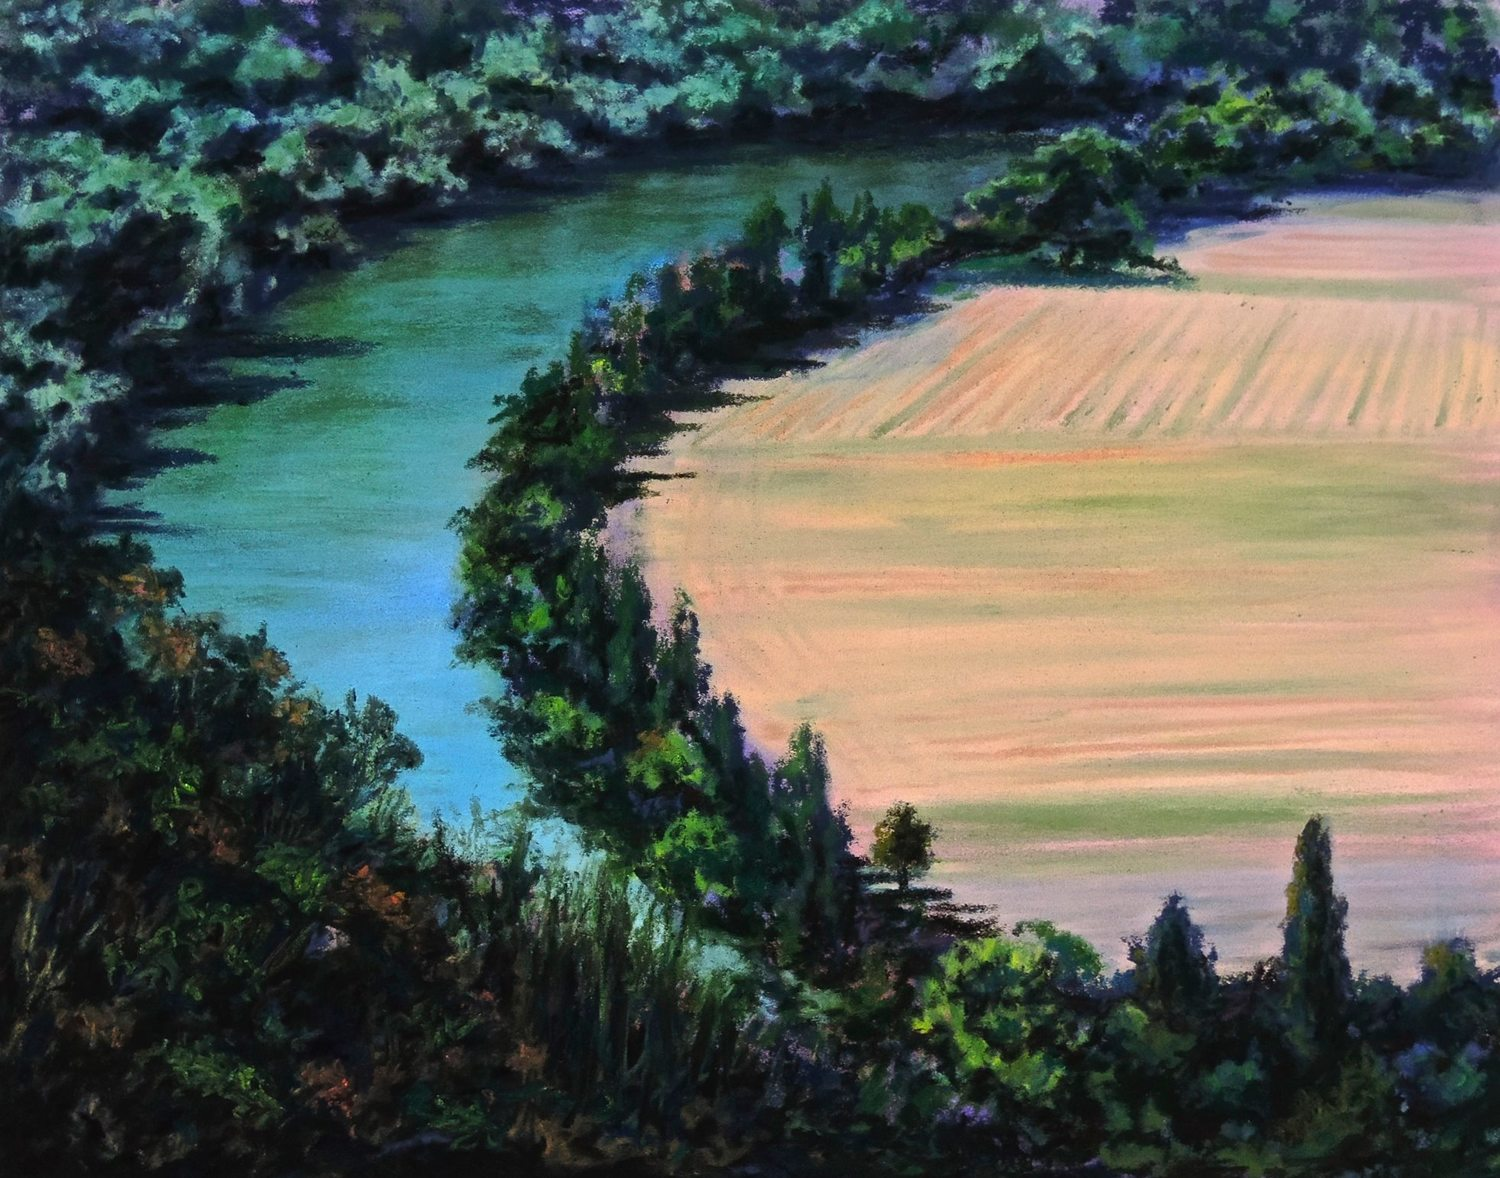 """LOT RIVER"", NEAR L'EVEQUE, FRANCE  Pastel Cheri GInsburg ©"